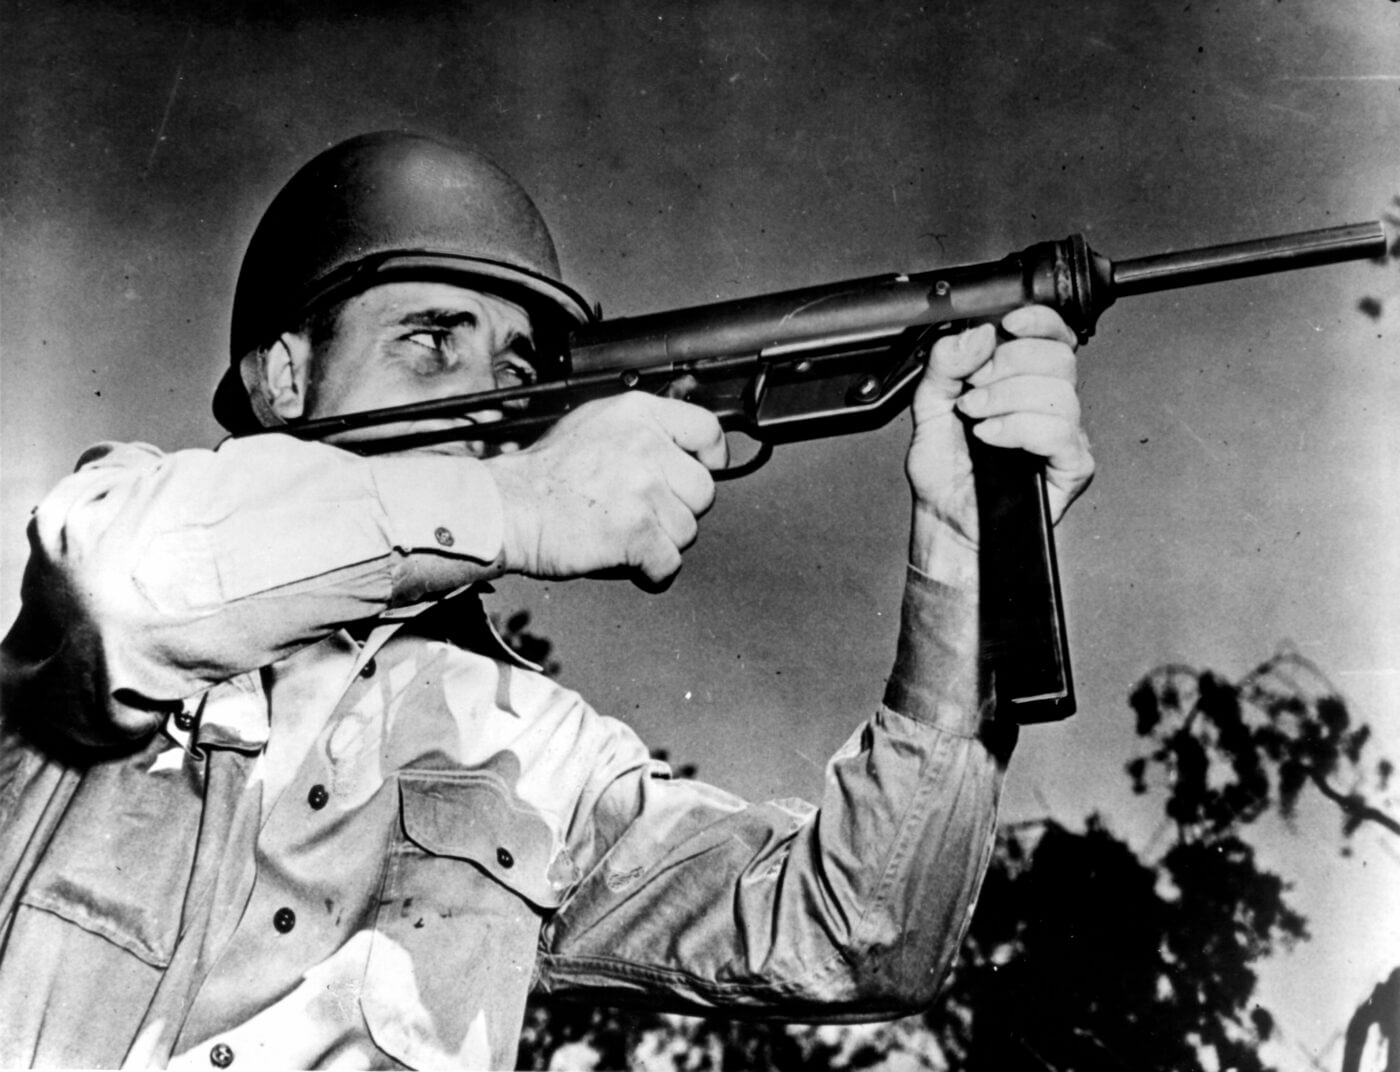 M3 Grease Gun being fired by a soldier in WWII